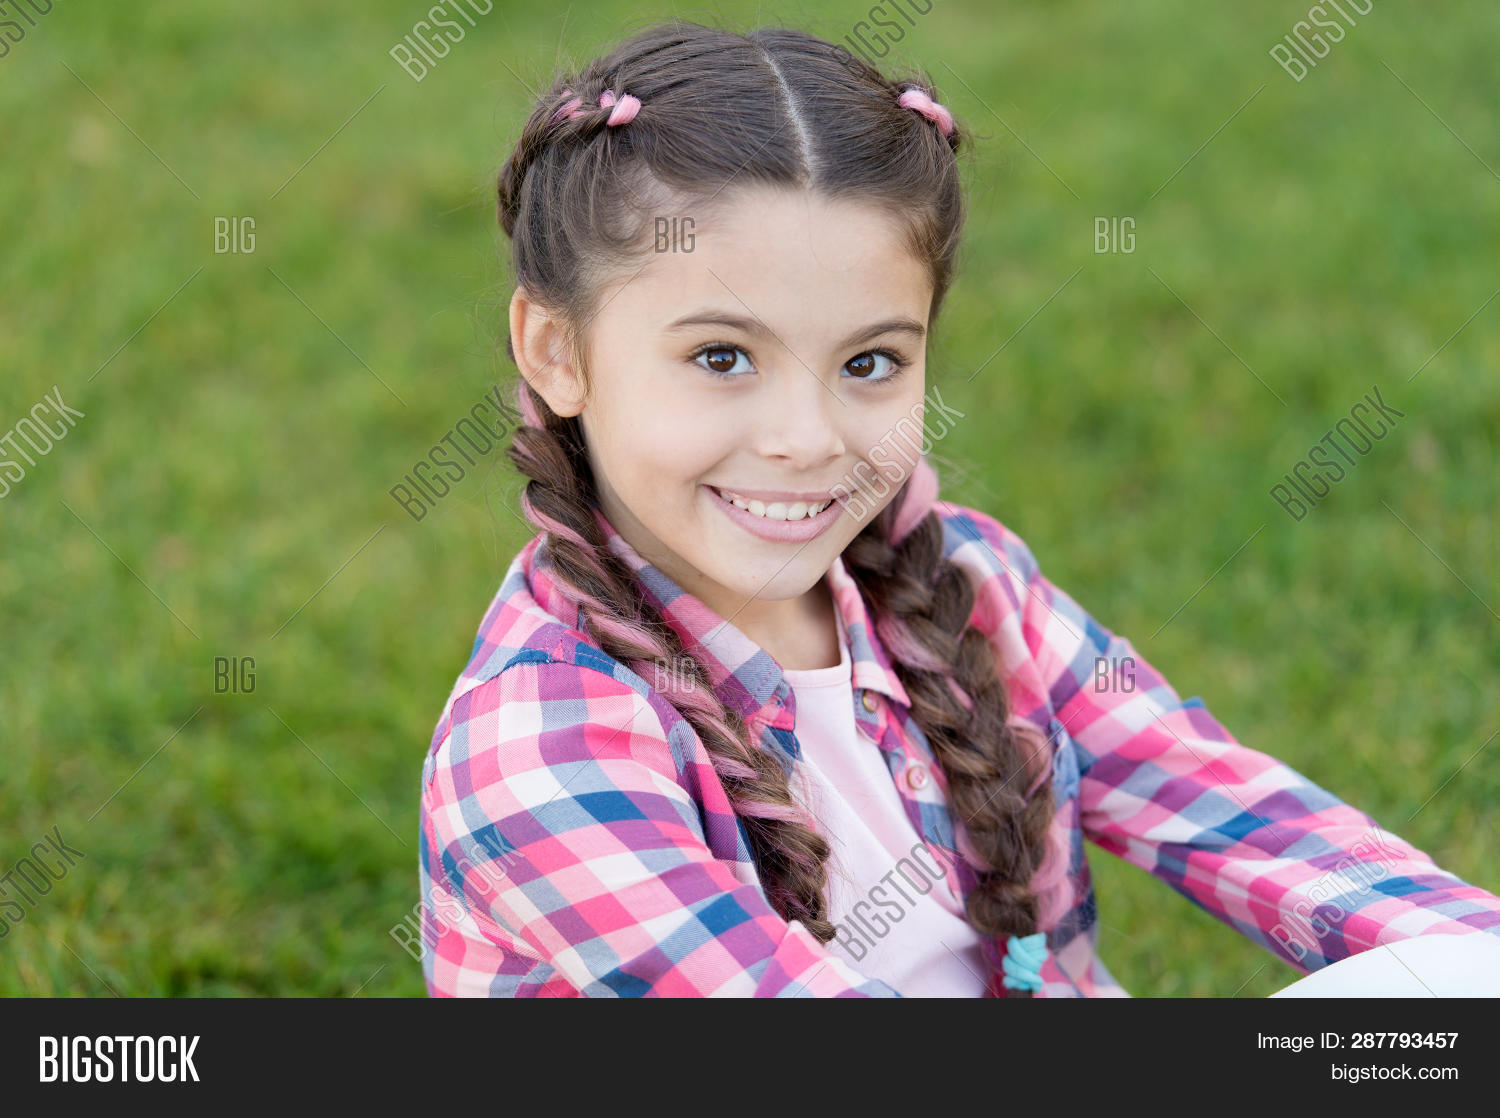 adorable,baby,background,beauty,braids,brilliant,care,carefree,charming,cheerful,child,childhood,childrens,cute,cutie,day,enjoy,face,fashion,fashionable,girl,hair,hairstyle,happiness,happy,international,joy,joyful,kid,little,long,outdoors,park,perfect,pleasant,pretty,salon,small,smile,smiling,spring,stylish,toothy,trend,walk